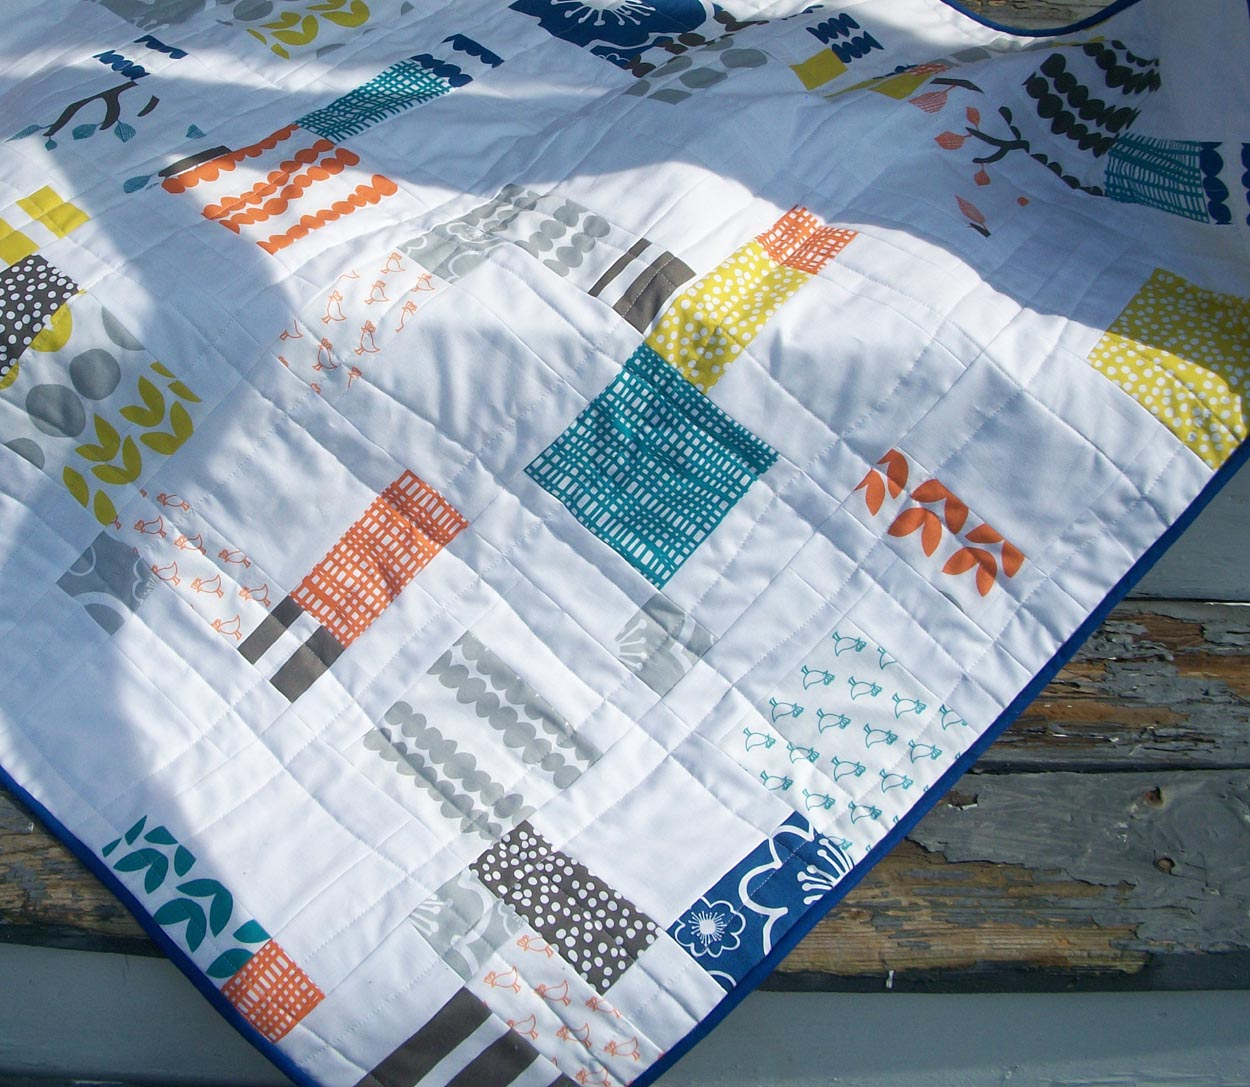 the prints in this quilt